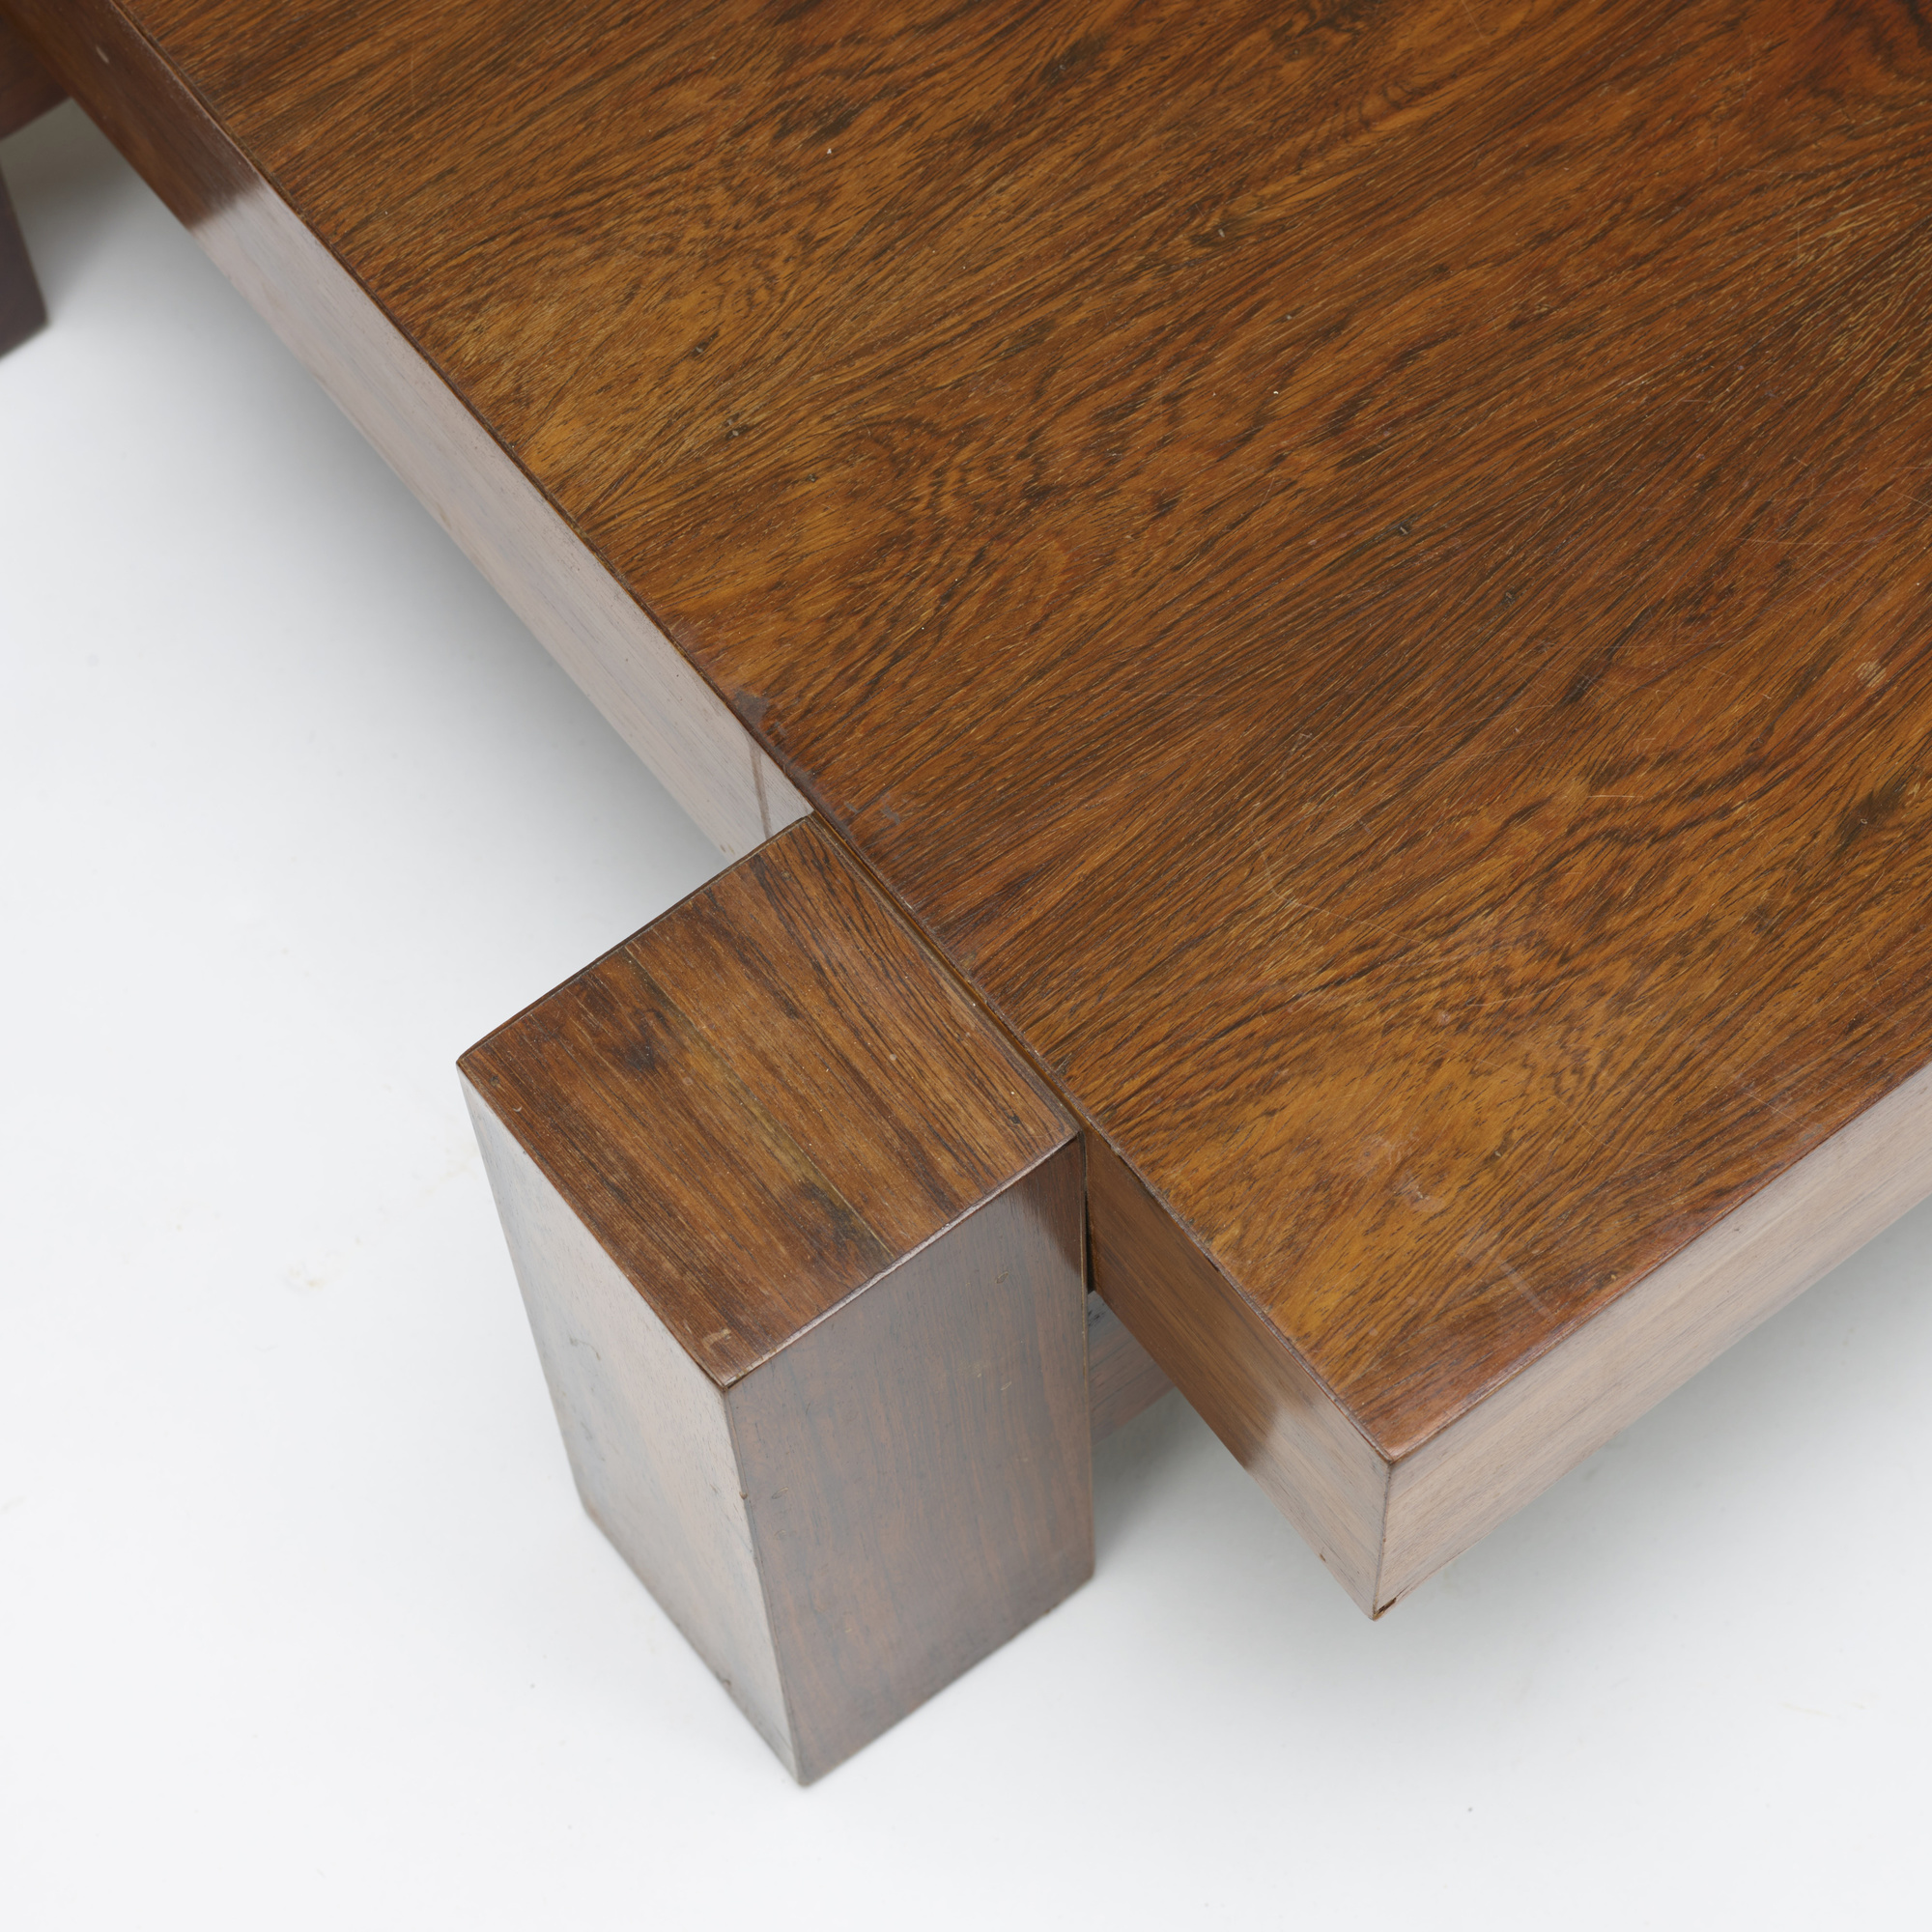 182: Brazilian / coffee table (2 of 2)